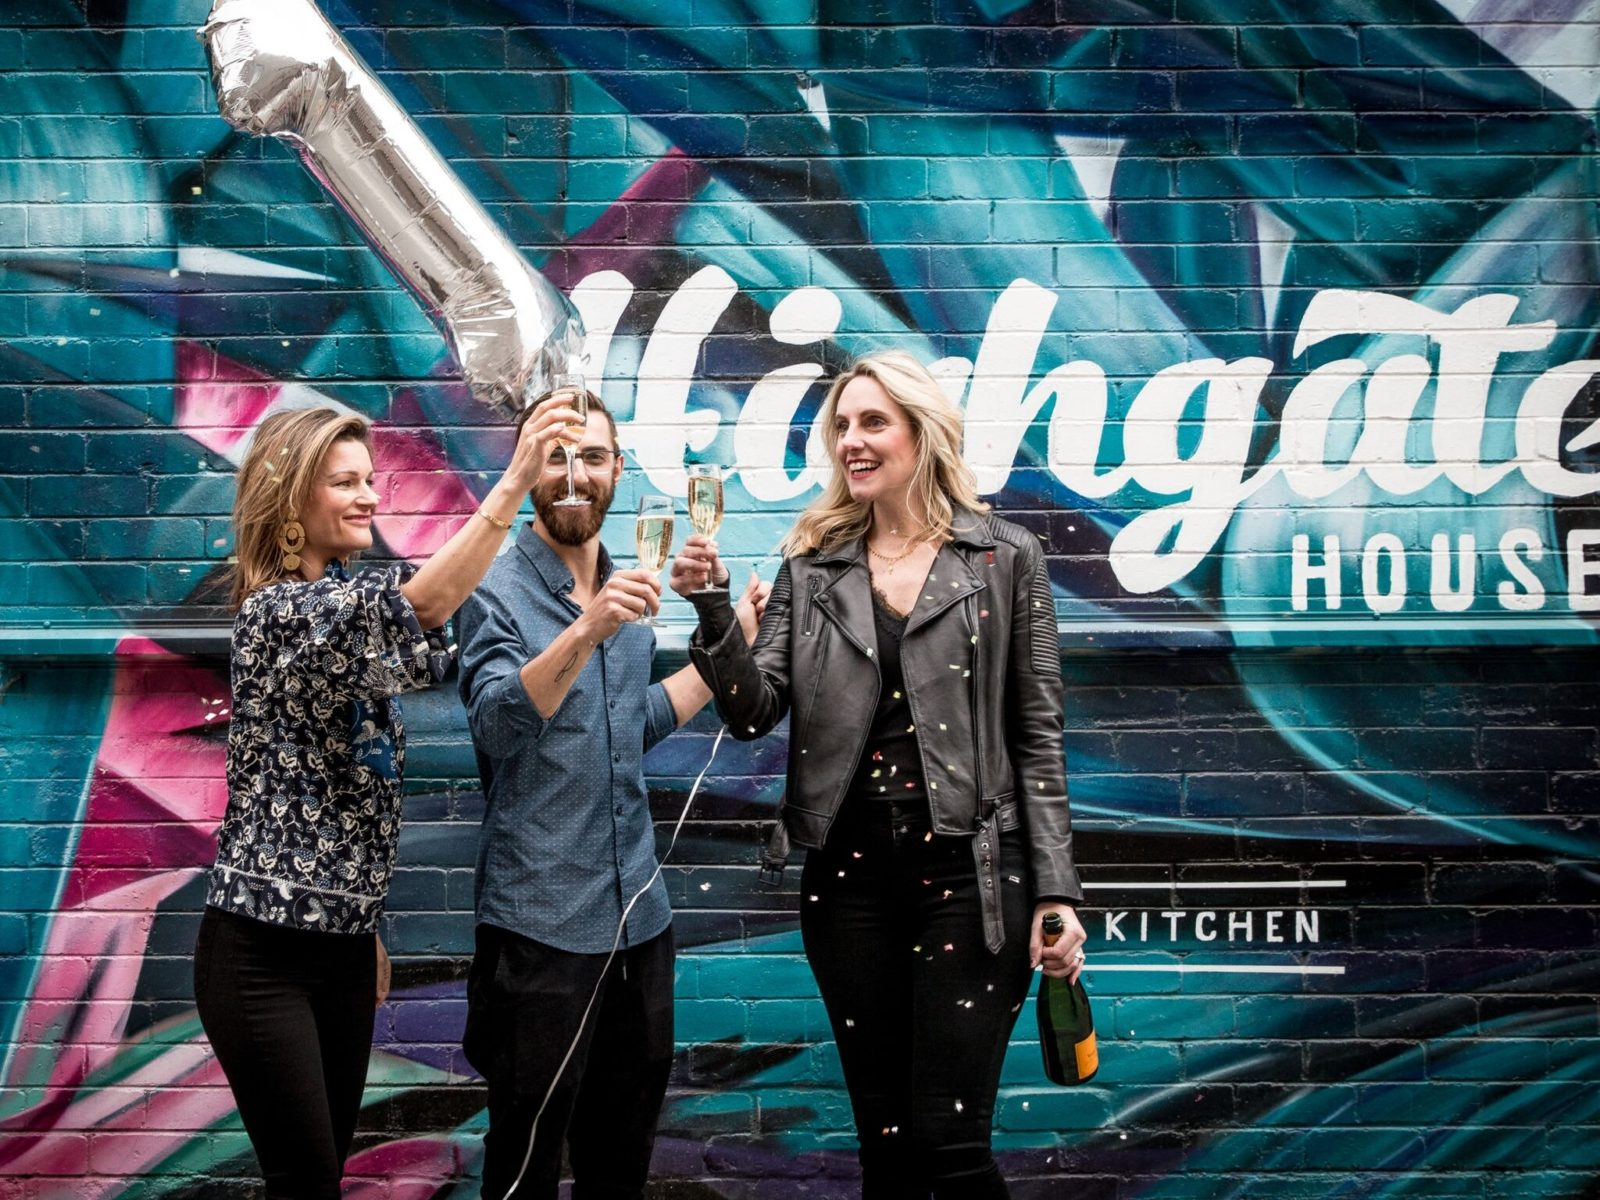 Highgate turns one